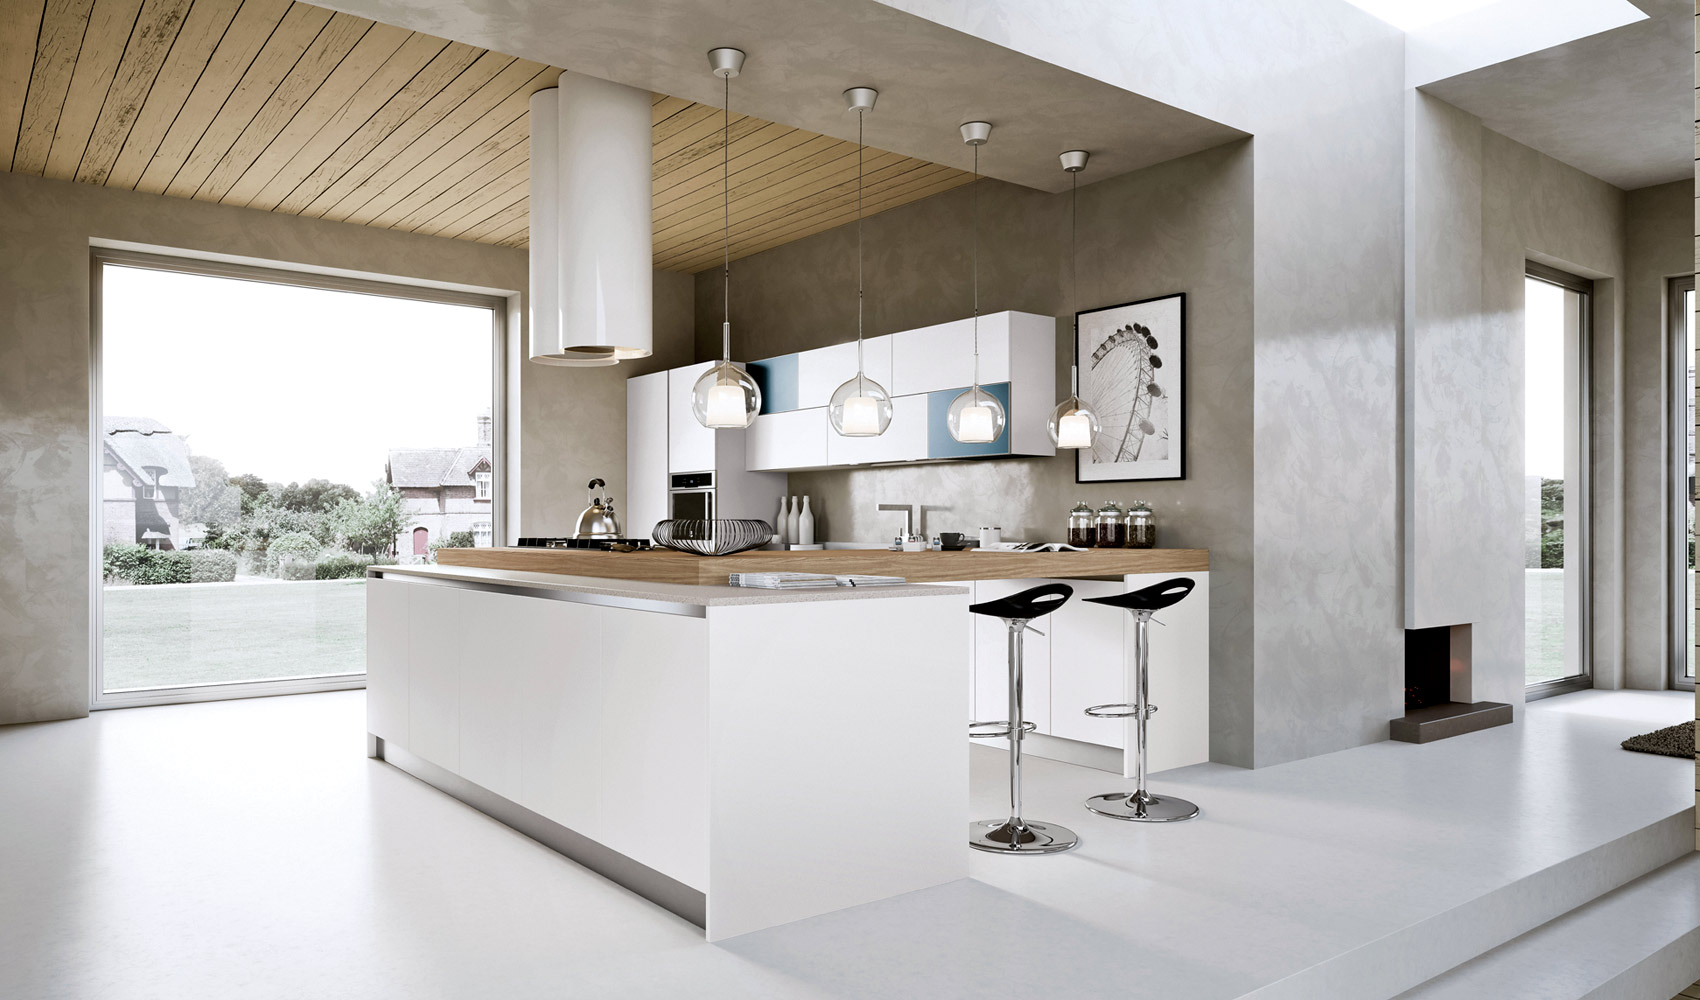 kitchen interior design white white kitchen interior design ideas 608